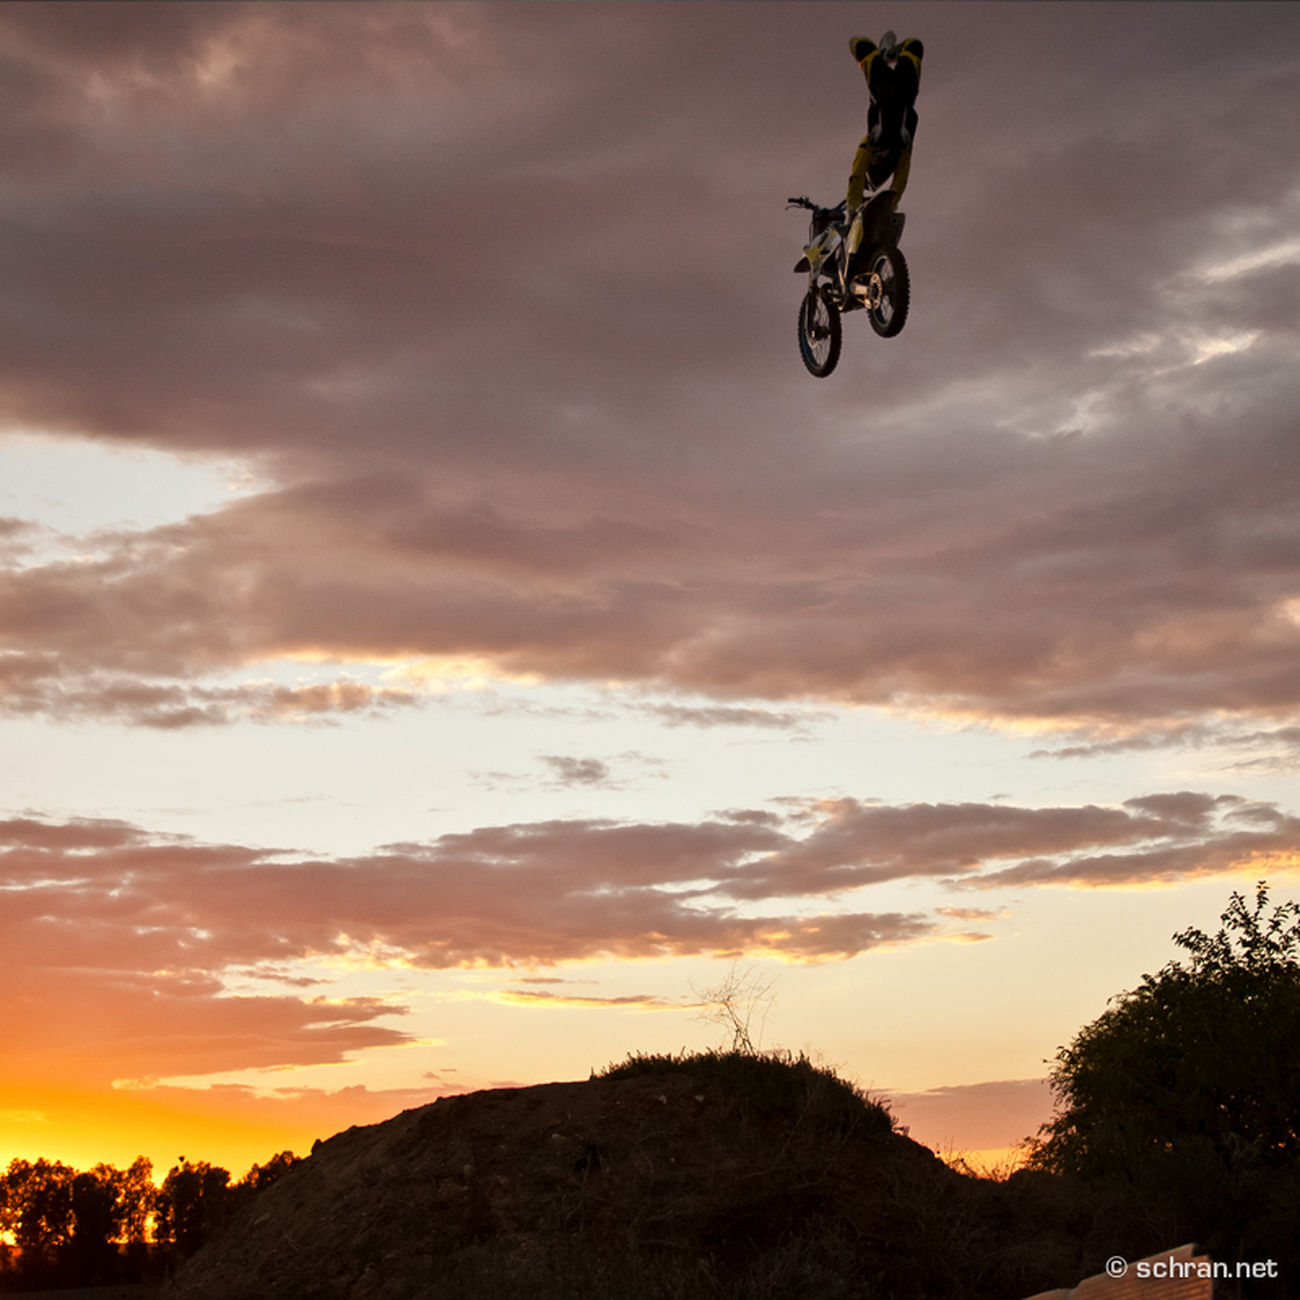 @maikelmelero pushing an #classic #doublegrab to the max on @danytorres71 compound in #arahal #spain back in 2010, when @faction_audiovisual and i worked on mr. #torres part for the #fmx #documentary #thatstheway. Find out more about this #unique project on thatstheway.tv if you do not know it! Arahal Dany Torres Comp Double Grab Fmx, Maikel Melero Moto Moto X NME Action, Midair Action Shoot's, Skateboarding, SPAIN First Eyeem Photo